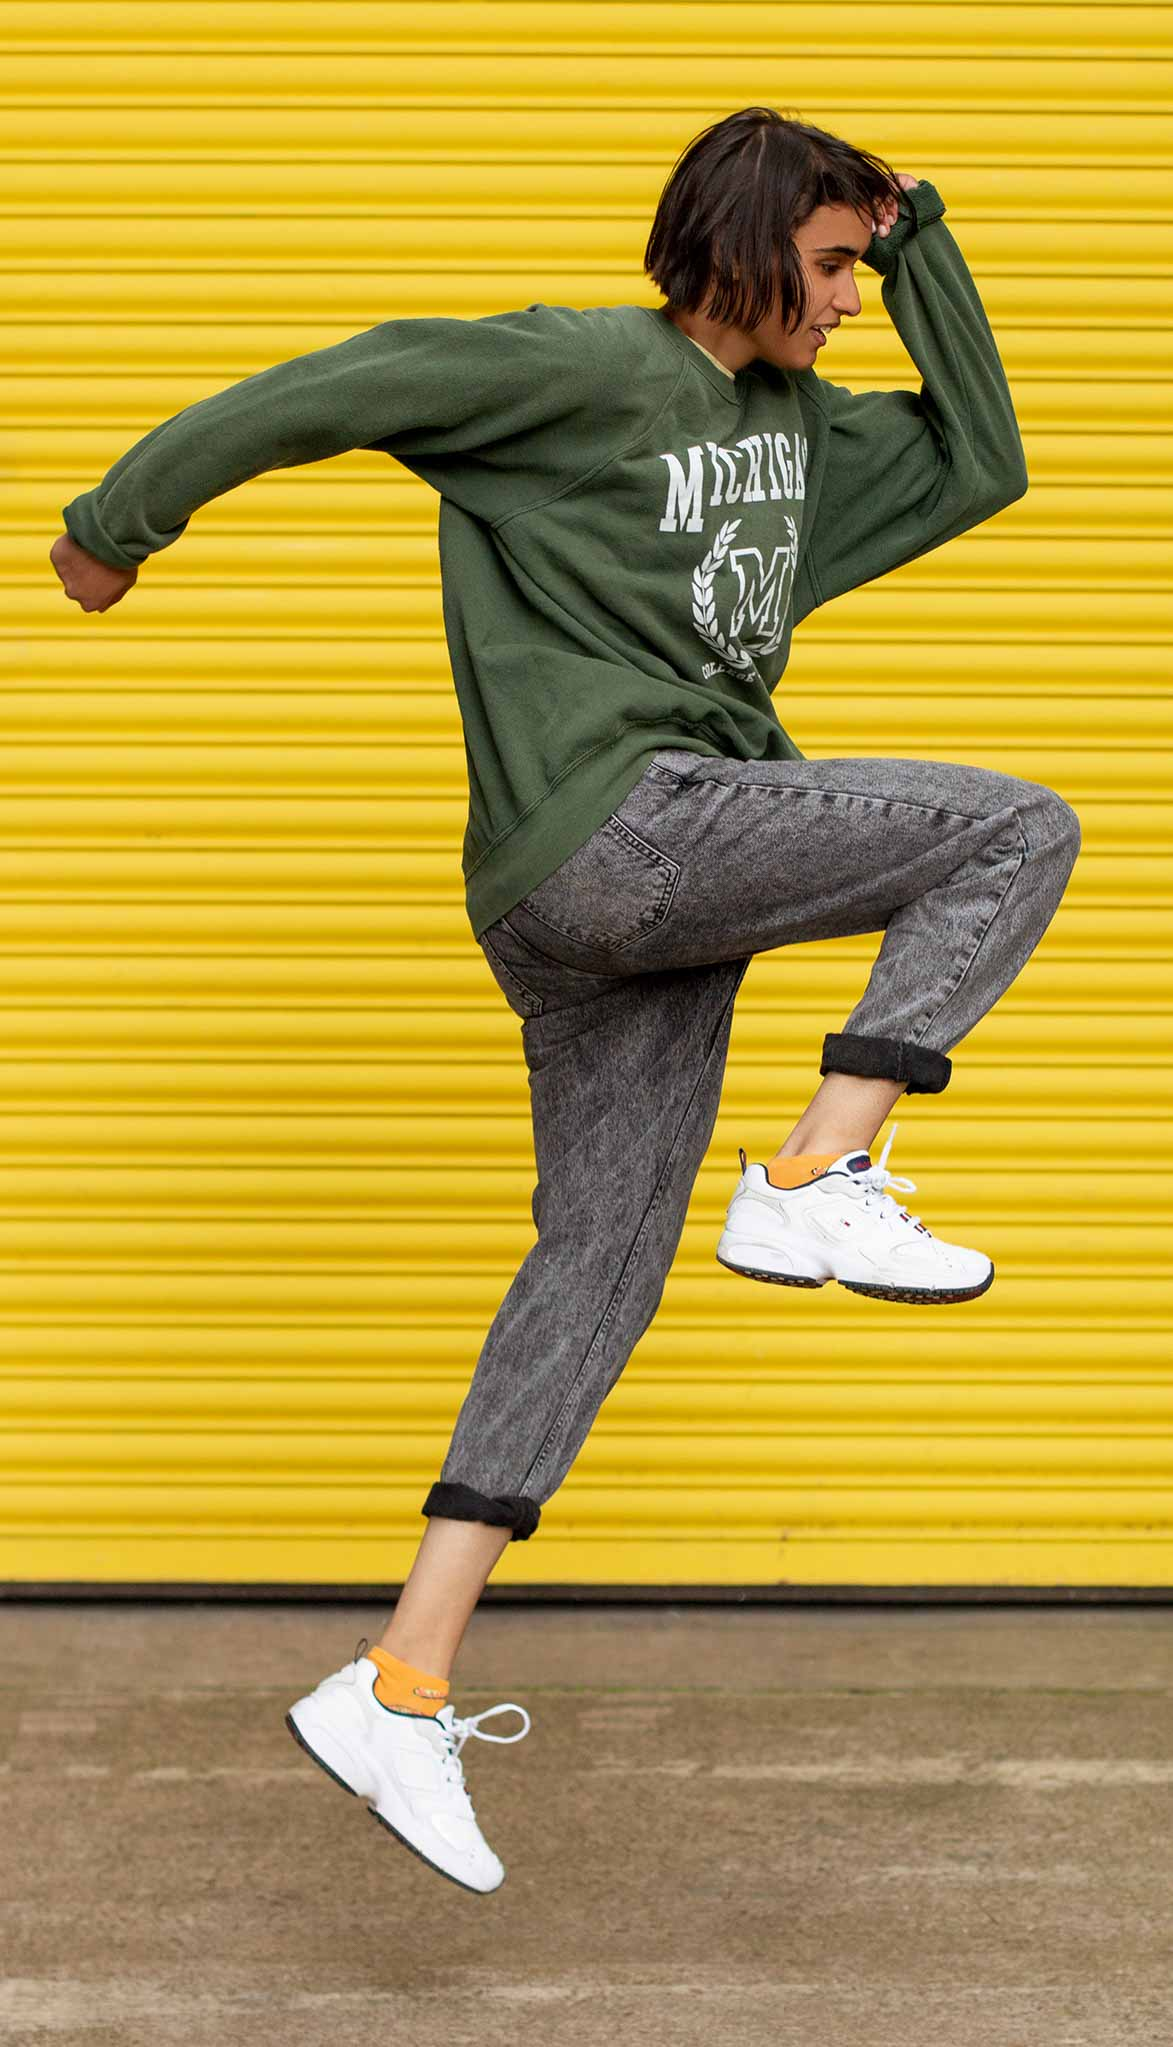 Action fashion photography Birmingham, active wear fashion photography Birmingham, Fashion photographer in Birmingham and West Midlands